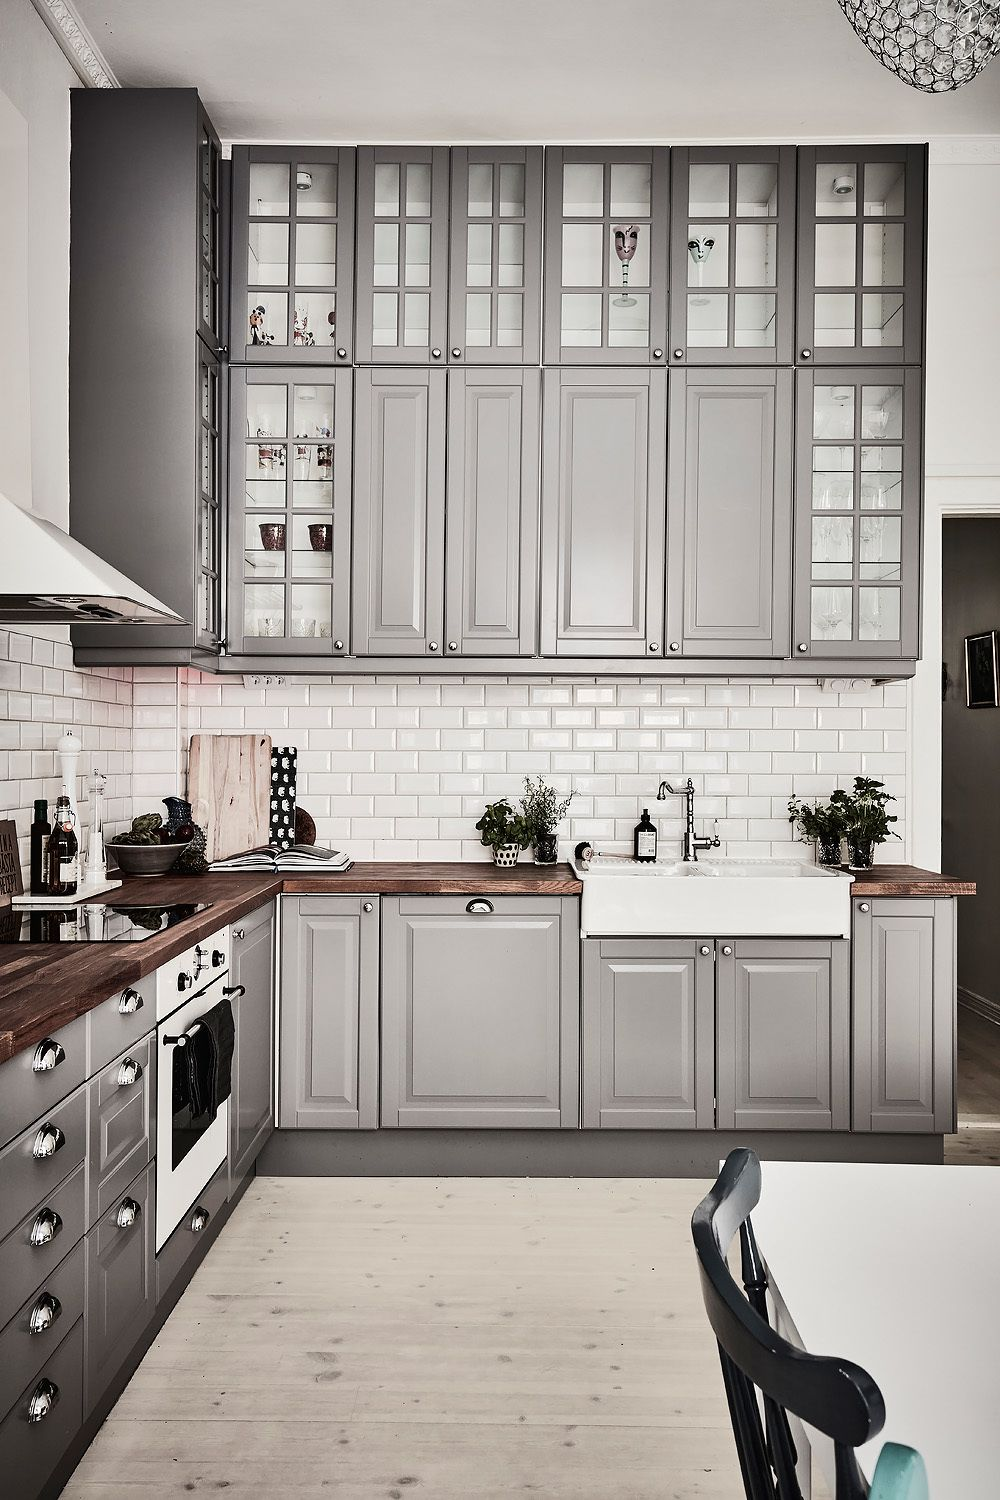 Inspiring Kitchens You Wont Believe Are IKEA Decorating Tips - Light grey kitchen cupboards